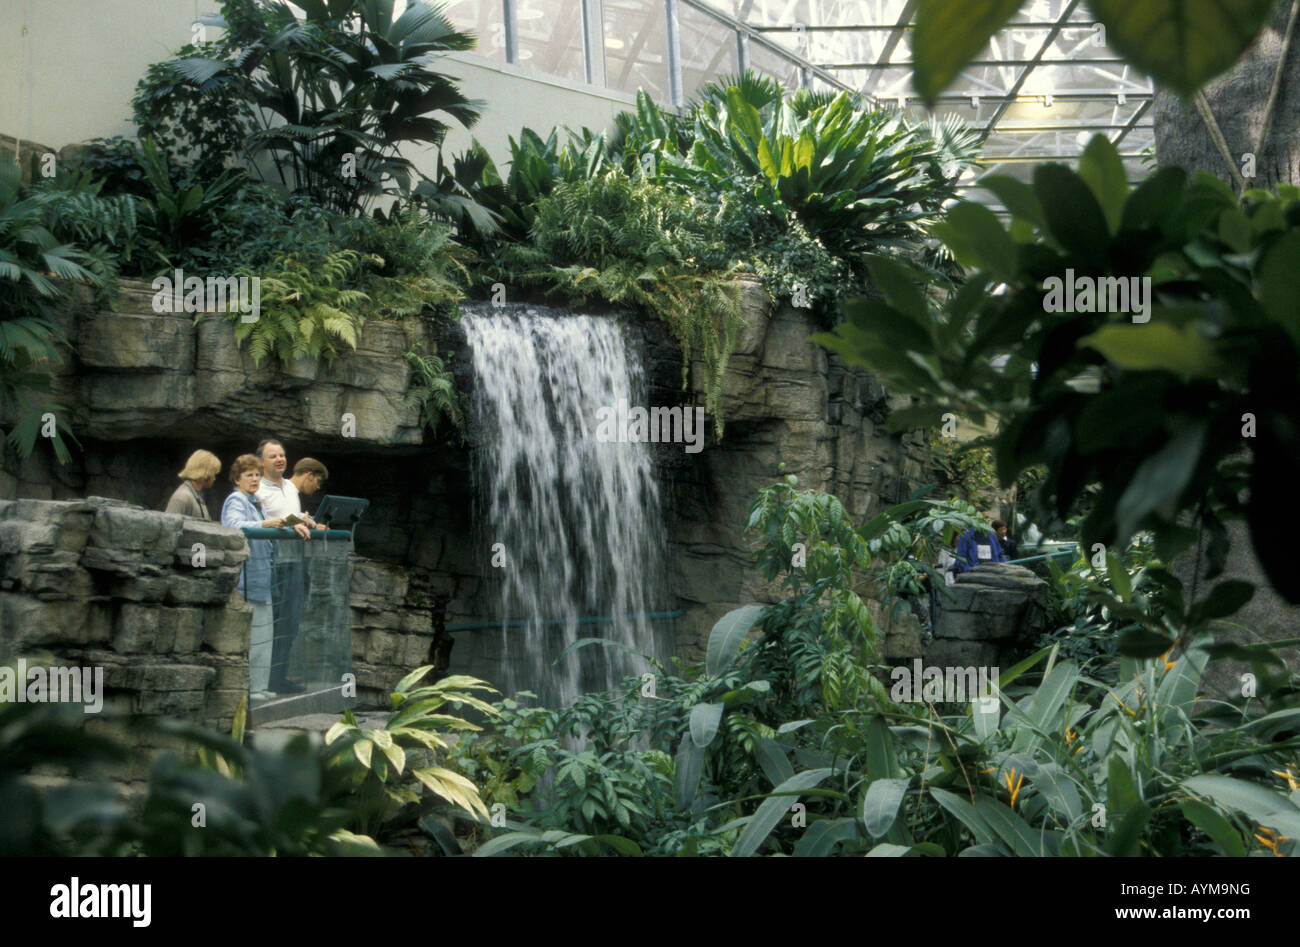 A waterfall in the tropical rainforest ecosystem of the for Biodome insectarium jardin botanique